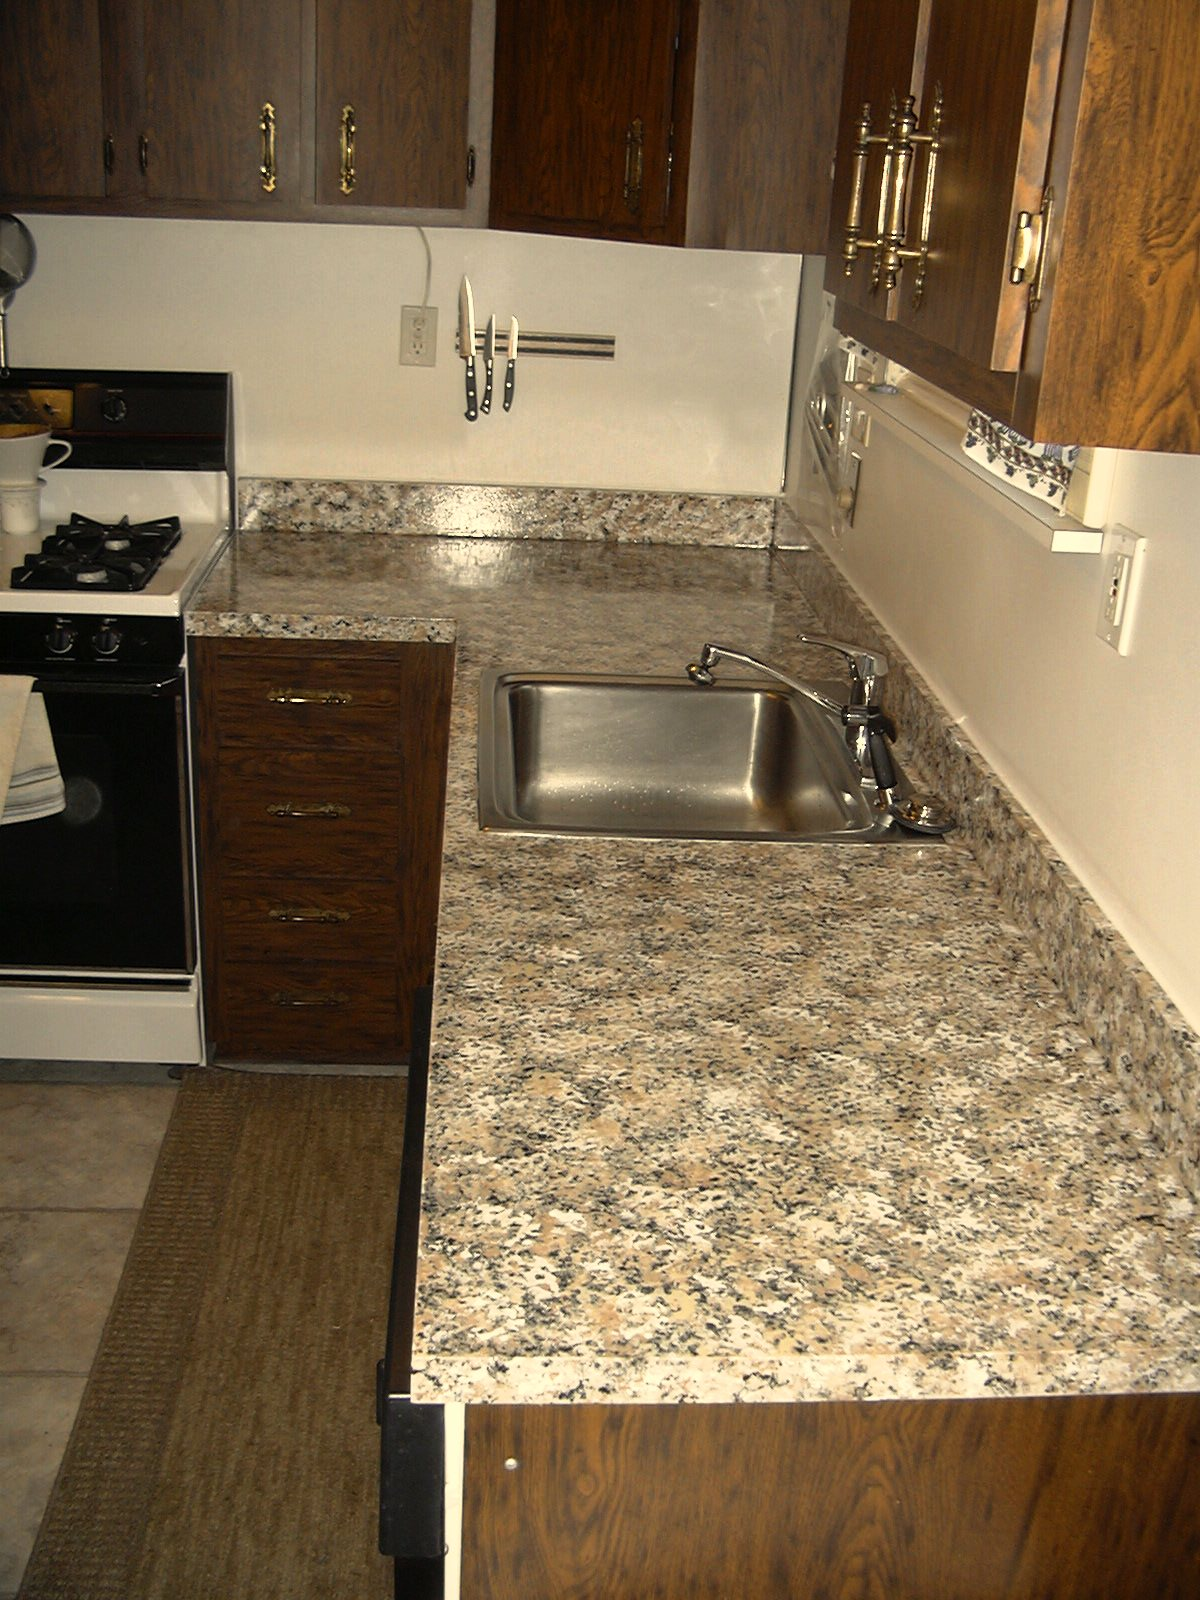 Countertop Paint Kit : ... Experience with the Giani Granite Countertop Paint Kit?February 2012